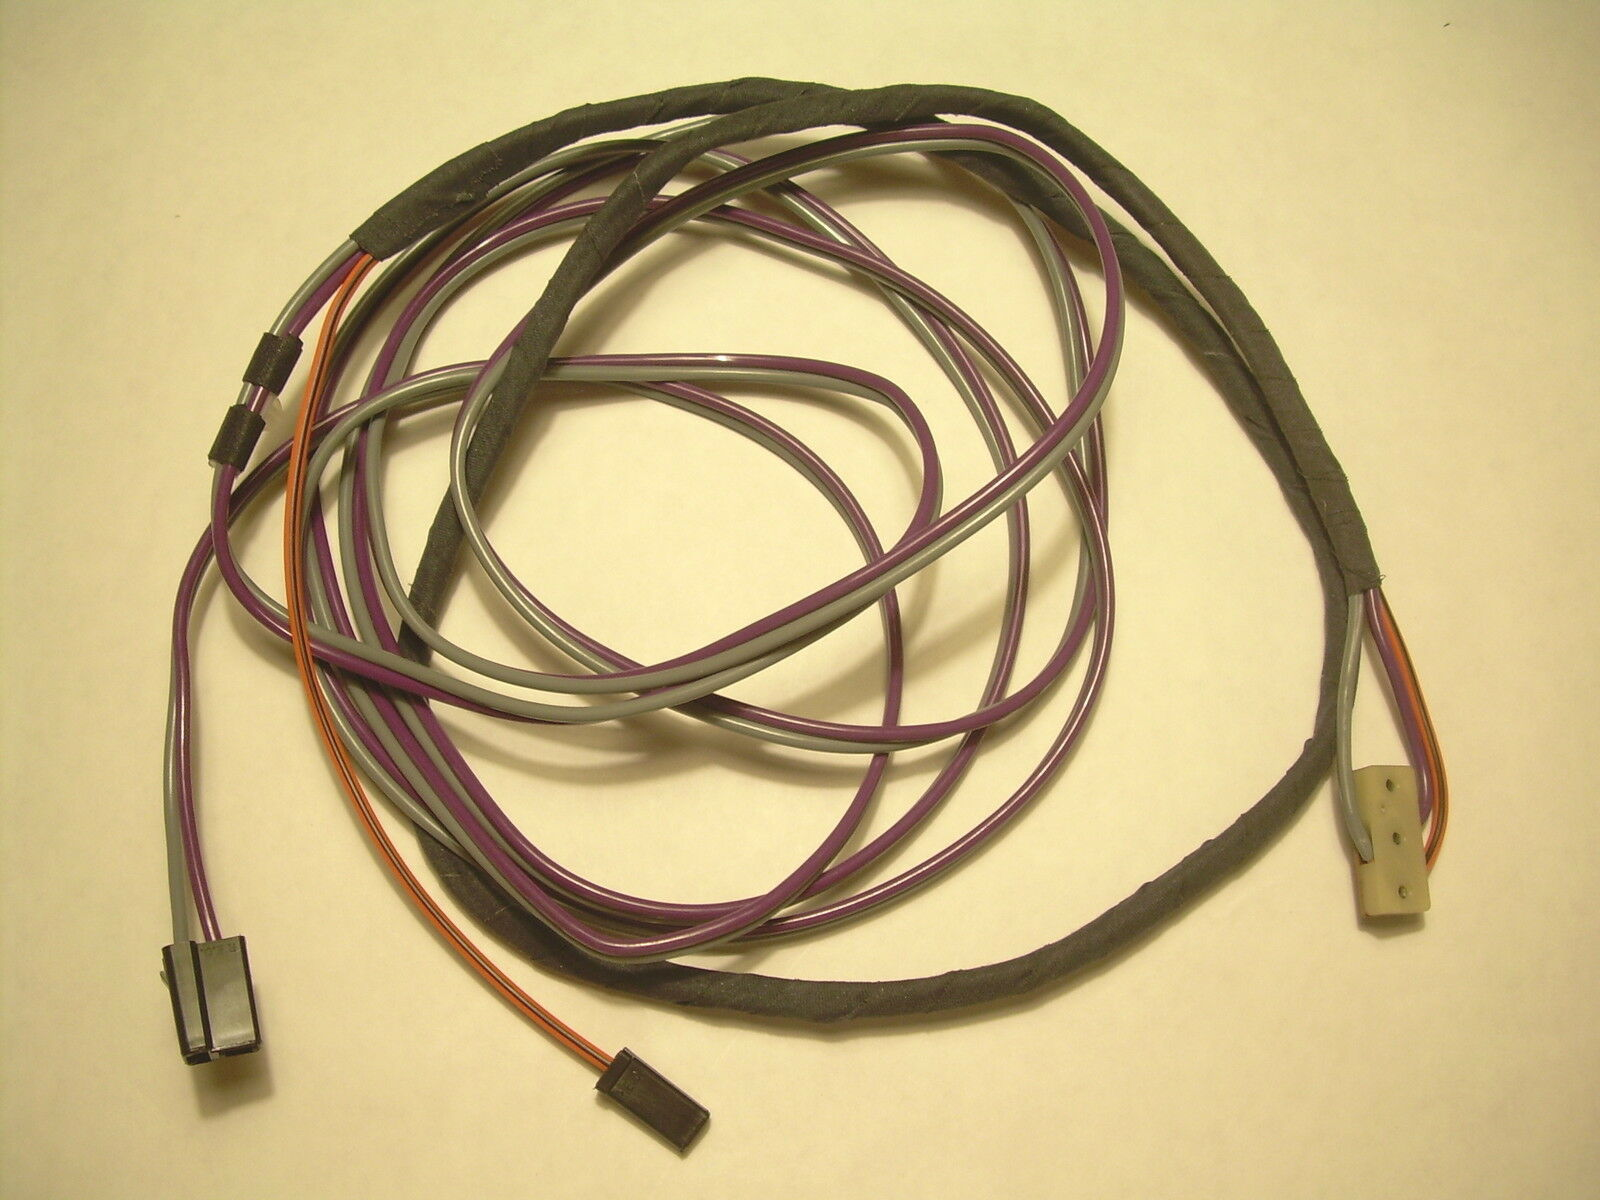 1969 Chevelle Convertible Power Top Switch Wiring Harness SS Malibu 1 of  4Only 2 available ...